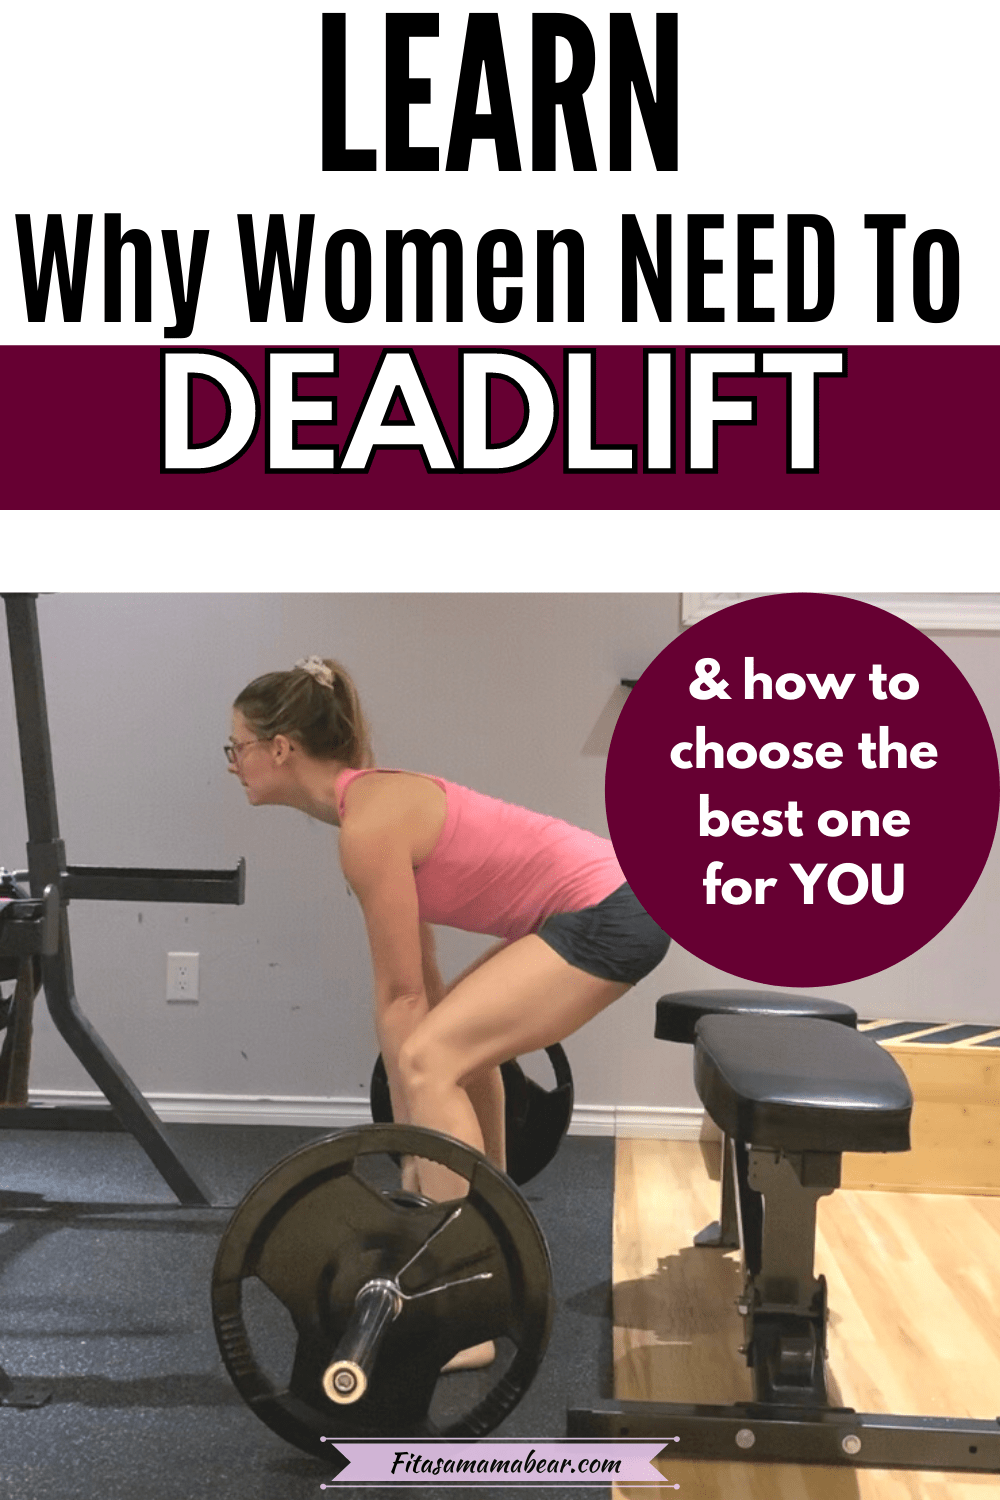 Pinterest image with text: woman in pink shirt and shorts in the gym performing a deadlift